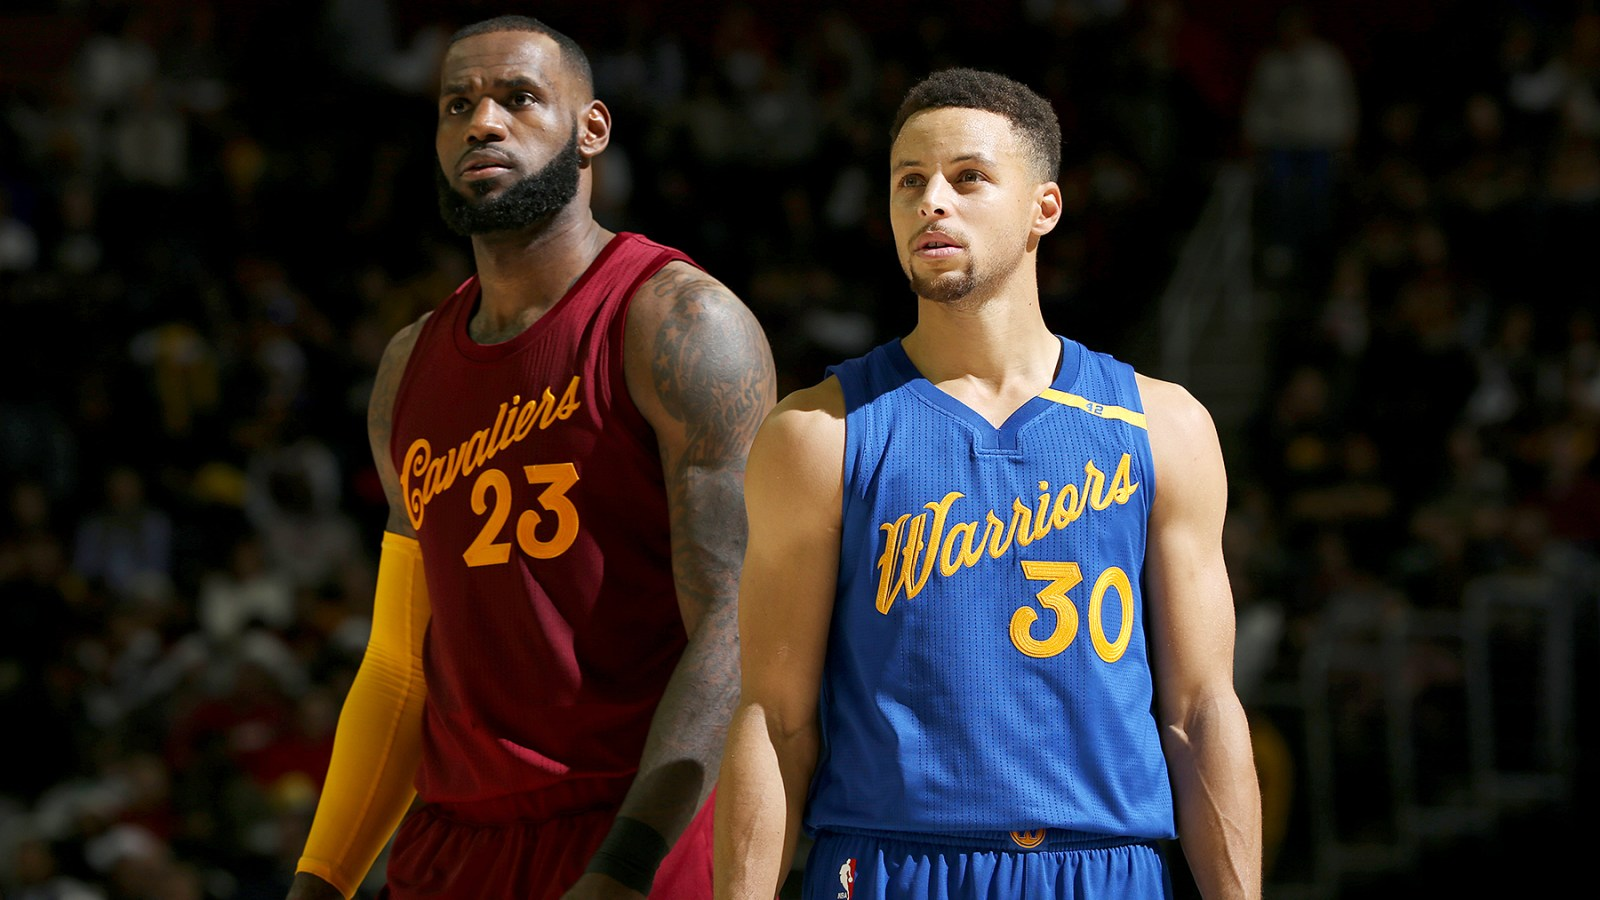 Stephen Curry Vs Lebron James All About The Nba Rivals